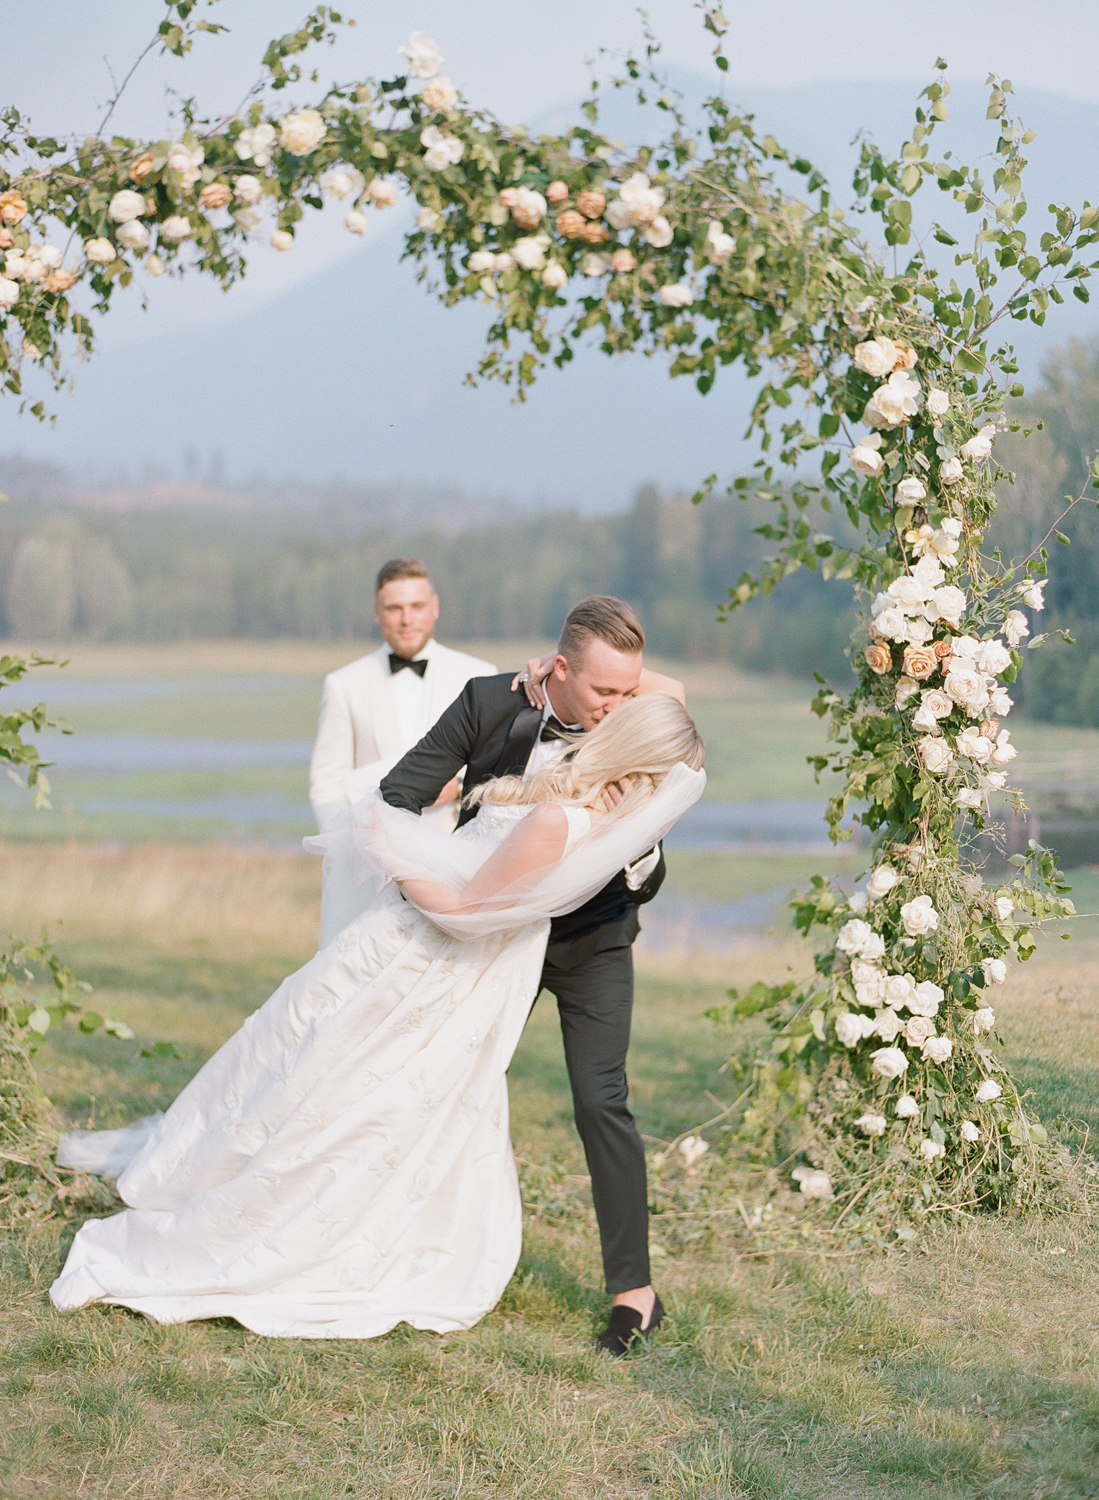 The groom dips the bride for the first kiss at the ceremony in Whitefish, Montana; Sylvie Gil Photography